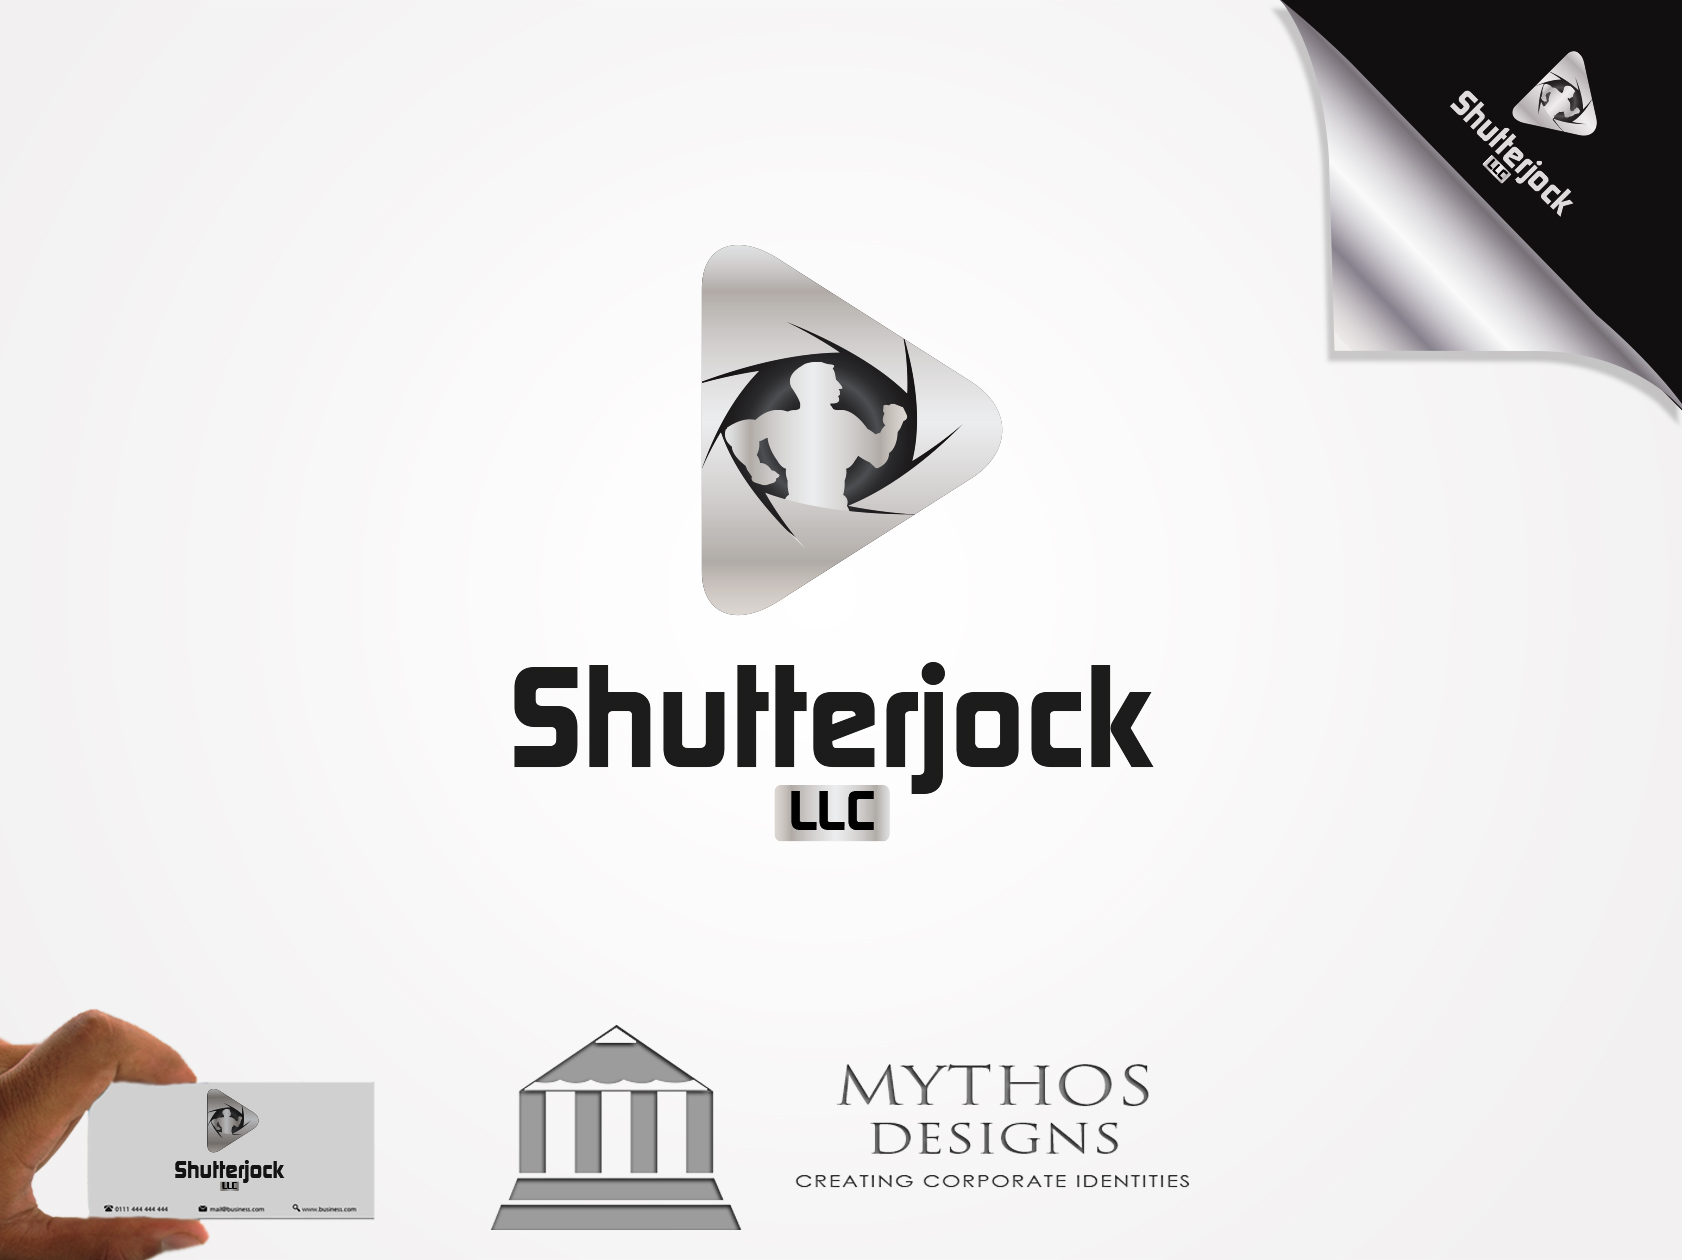 Logo Design by Mythos Designs - Entry No. 75 in the Logo Design Contest Unique Logo Design Wanted for Shutterjock LLC.